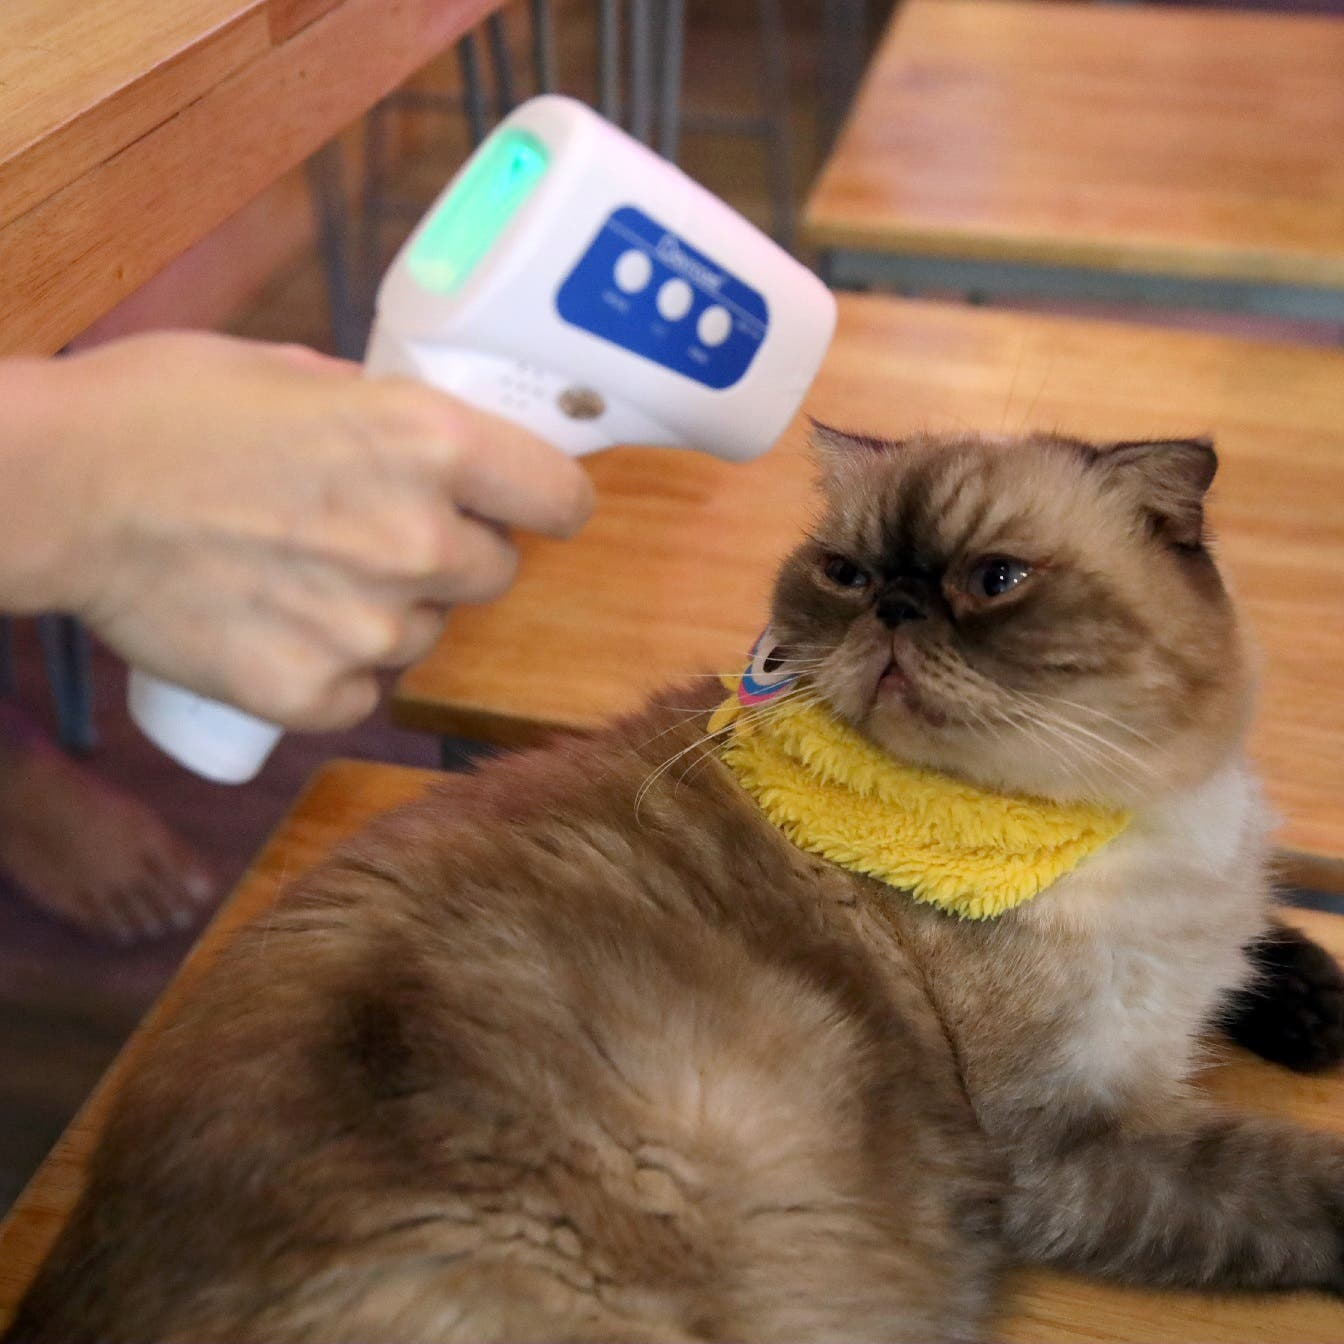 Coronavirus: Pets can catch COVID-19 from owners, study finds